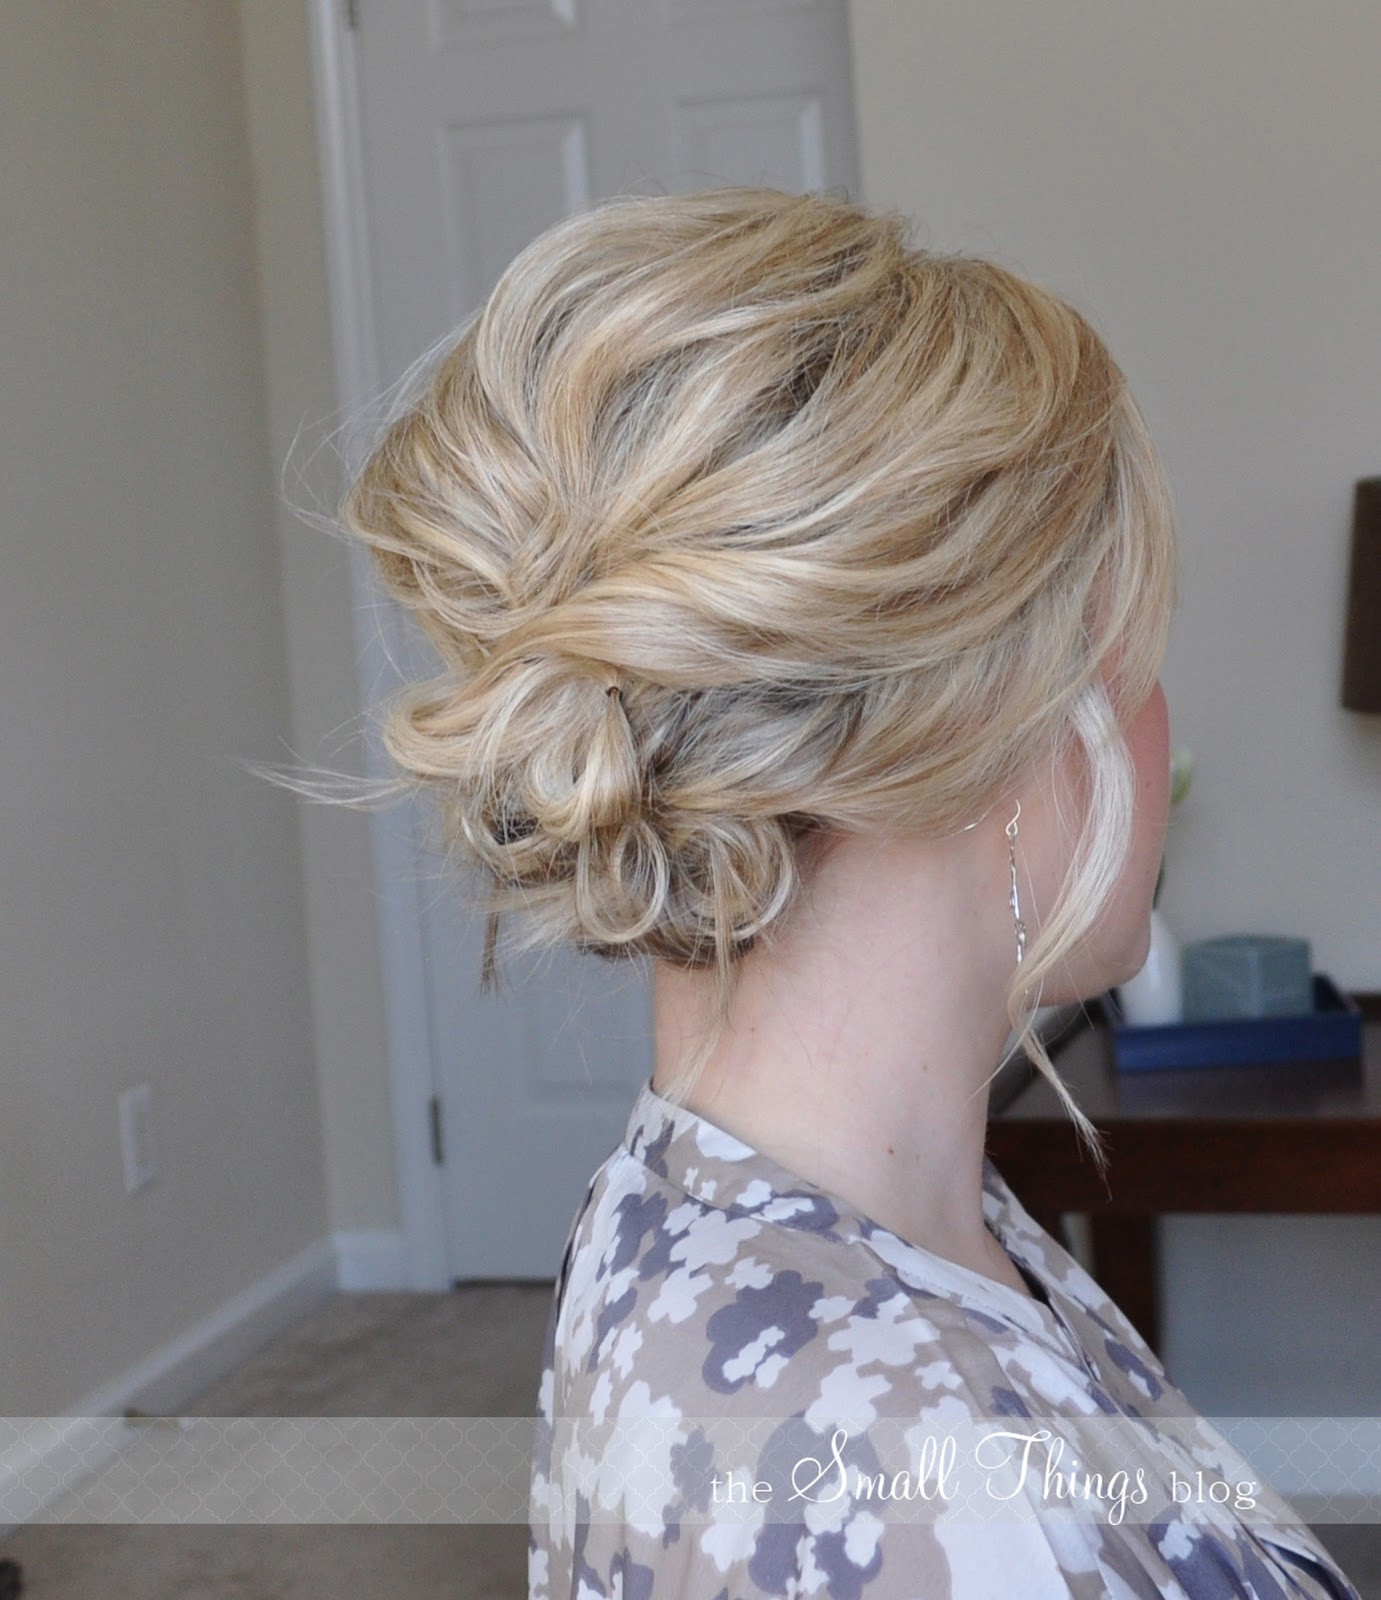 Best ideas about Easy Up Hairstyles . Save or Pin The Messy Side Updo – The Small Things Blog Now.